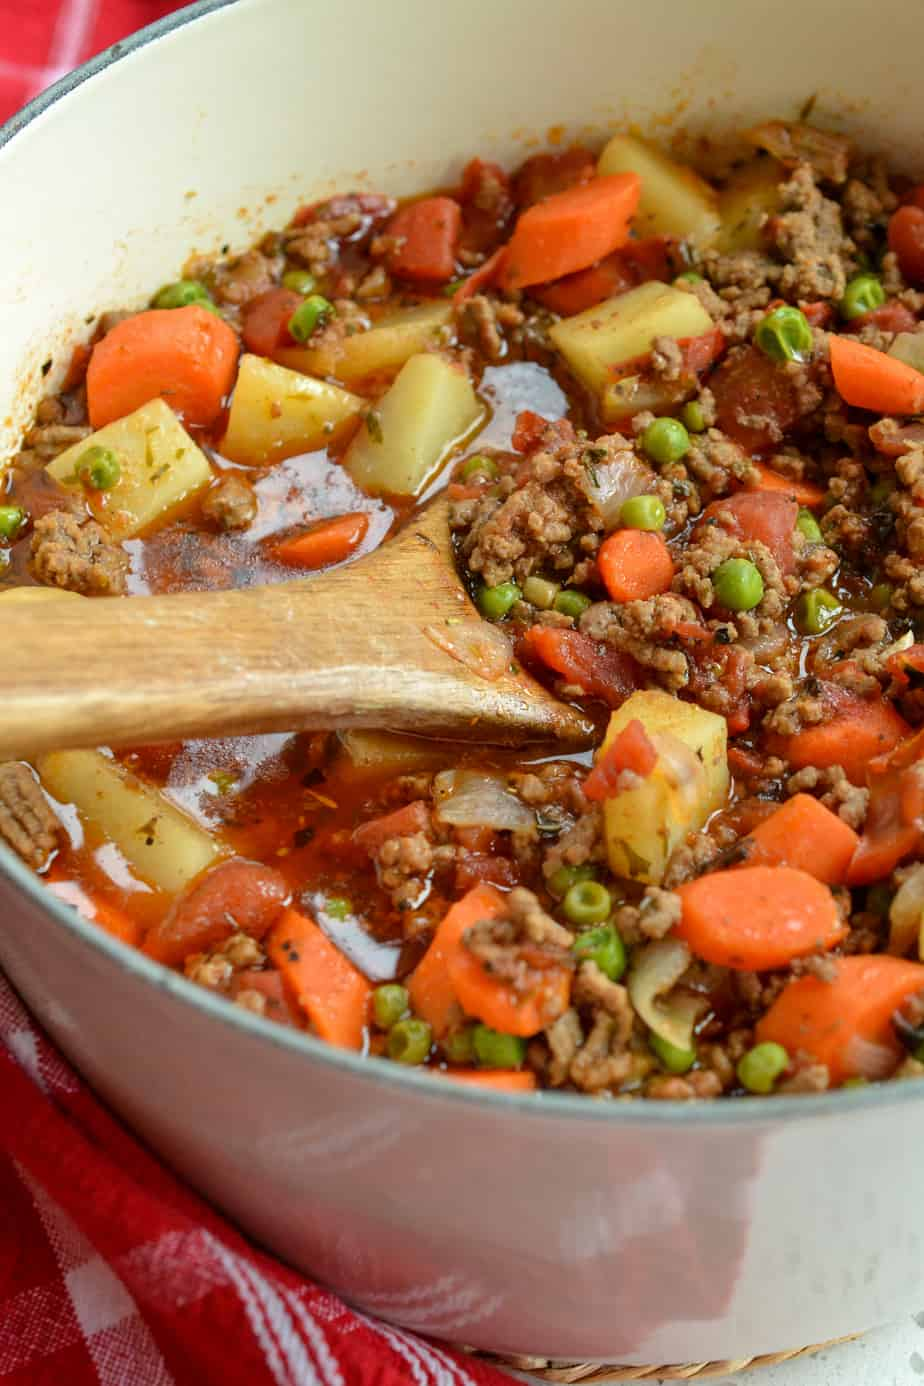 Old fashioned hamburger stew is made in about forty minutes with ground beef, fresh vegetables and a easy blend of spices